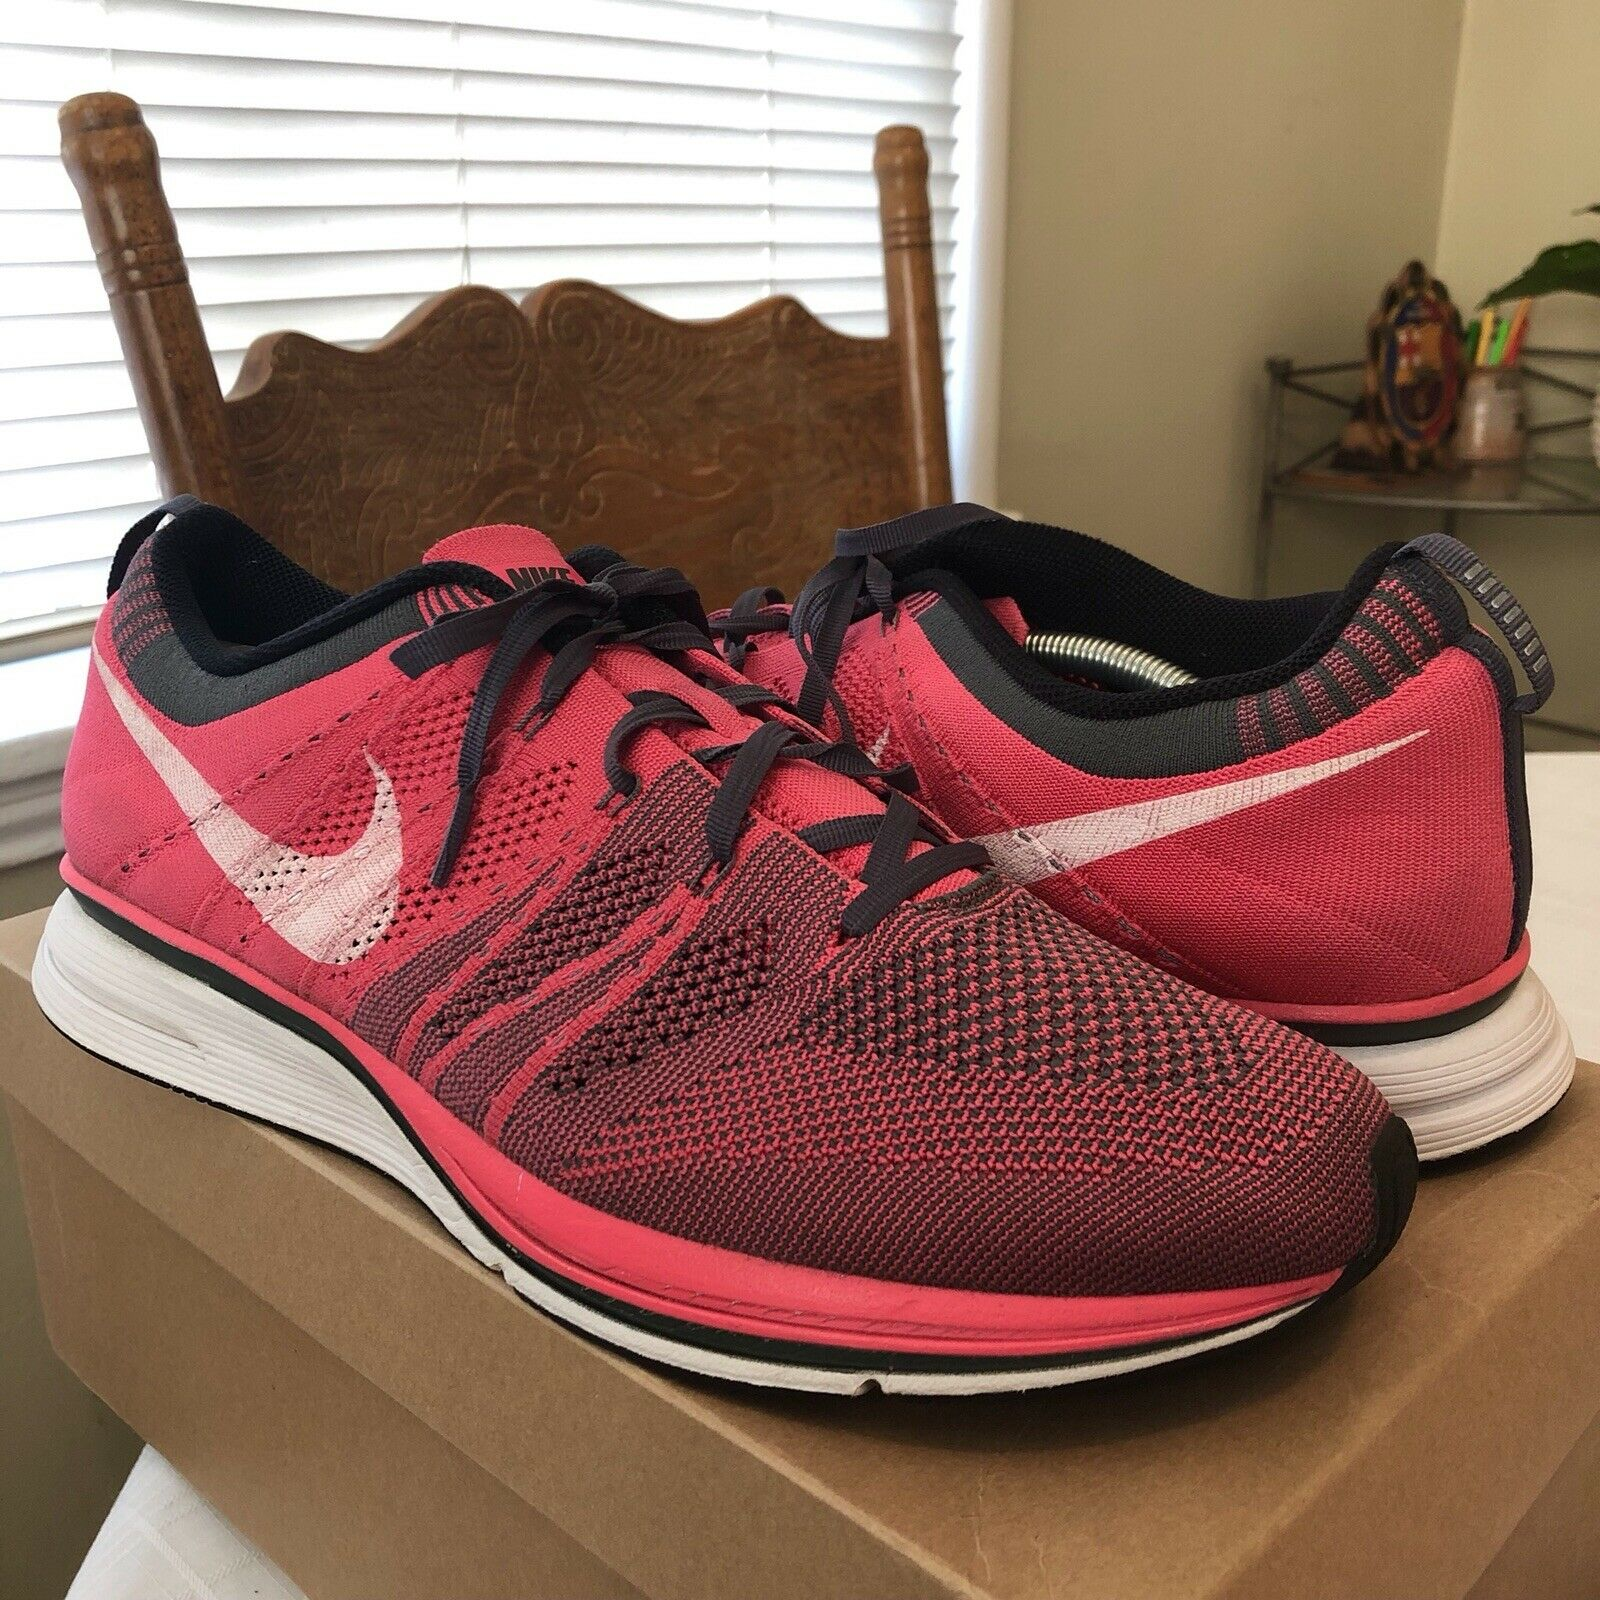 Nike 2013 Flyknit Trainers Trainer size 13 Pink bluee Running Racers shoes Fit